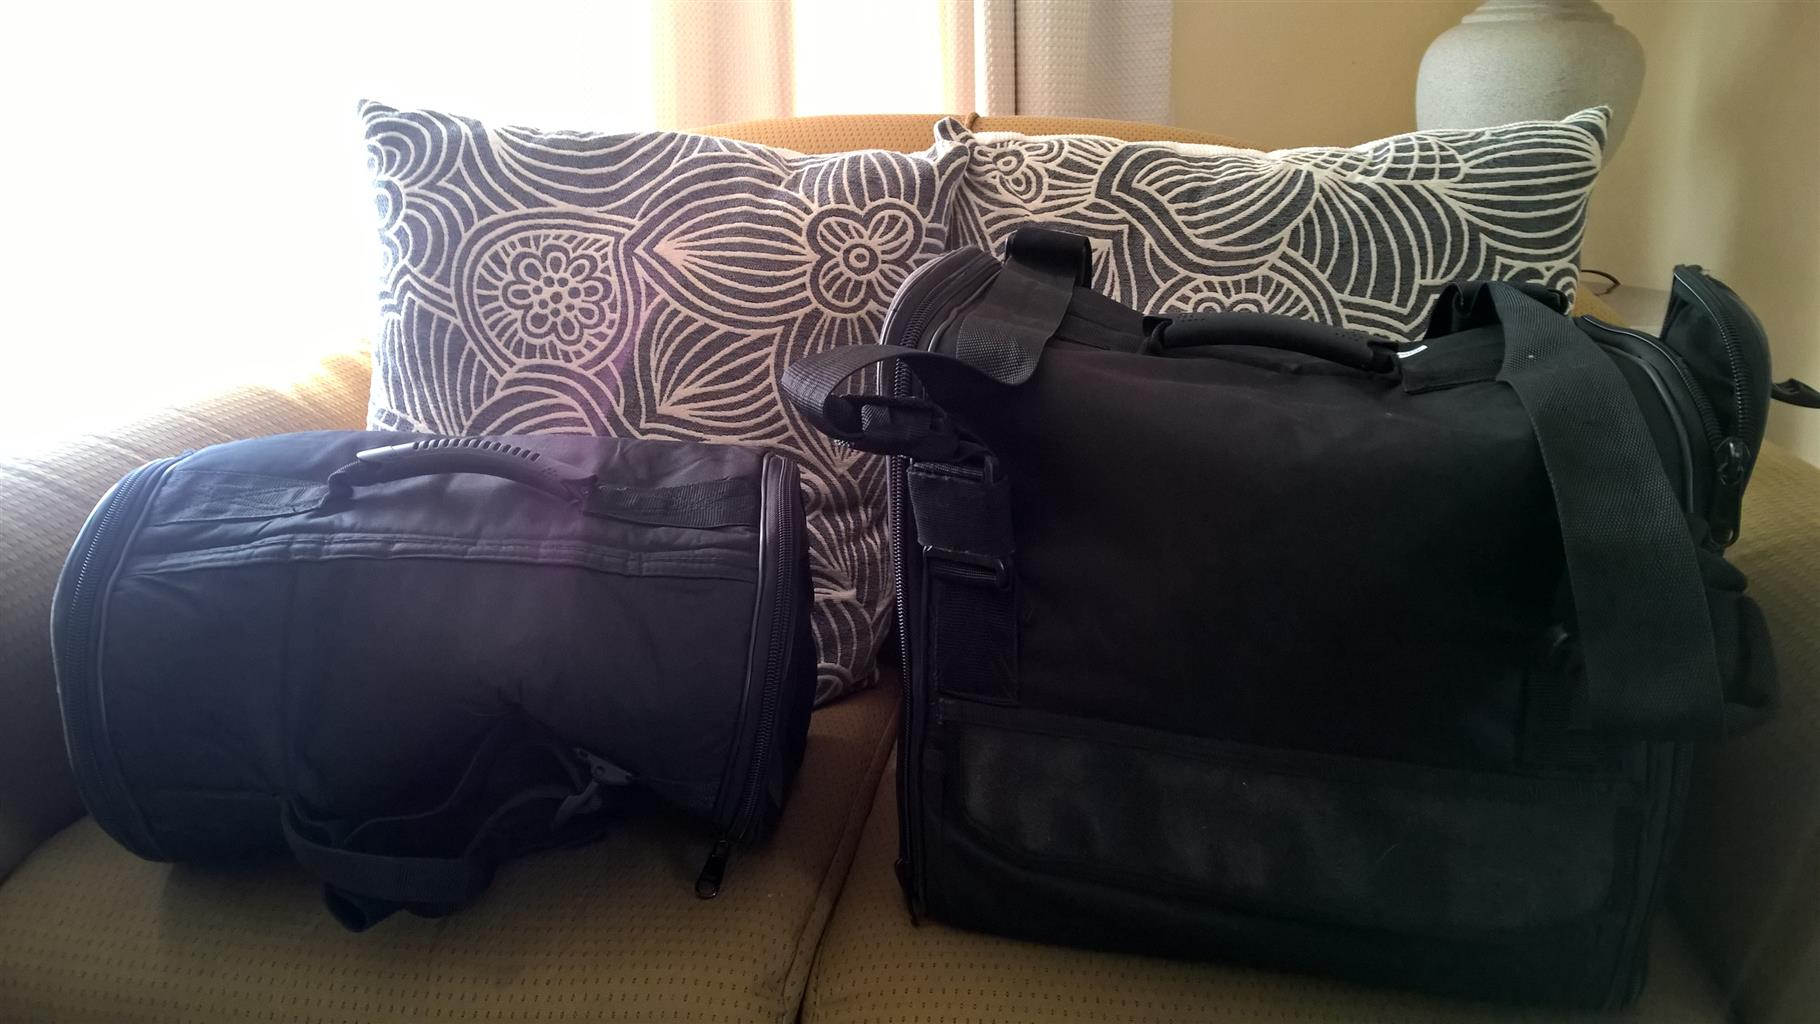 Luggage Tail Bags